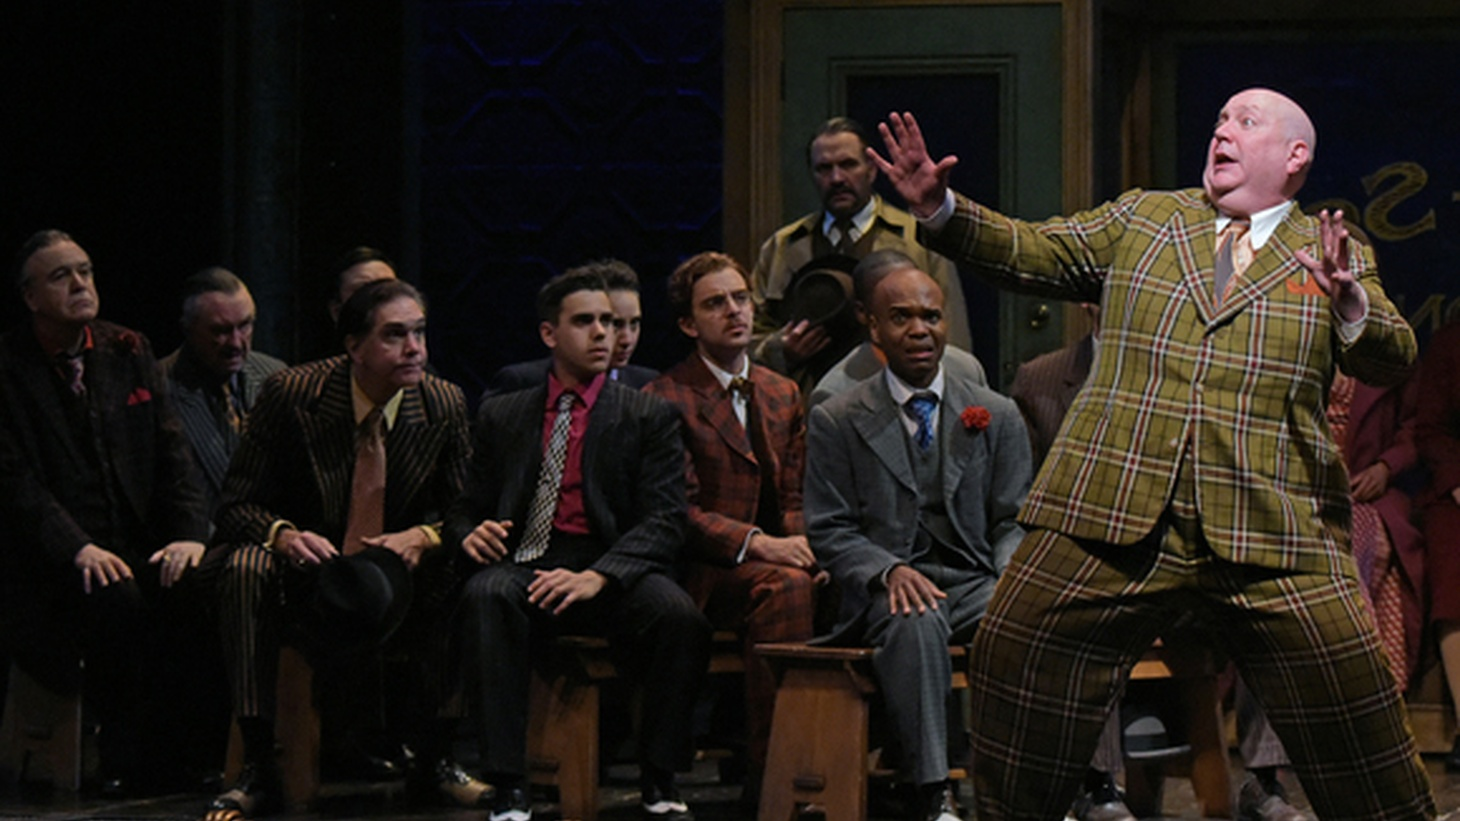 This may not be the best production of Guys & Dolls you'll ever see but it is the most approachable and heartfelt -- and that's perfect for a holiday show.